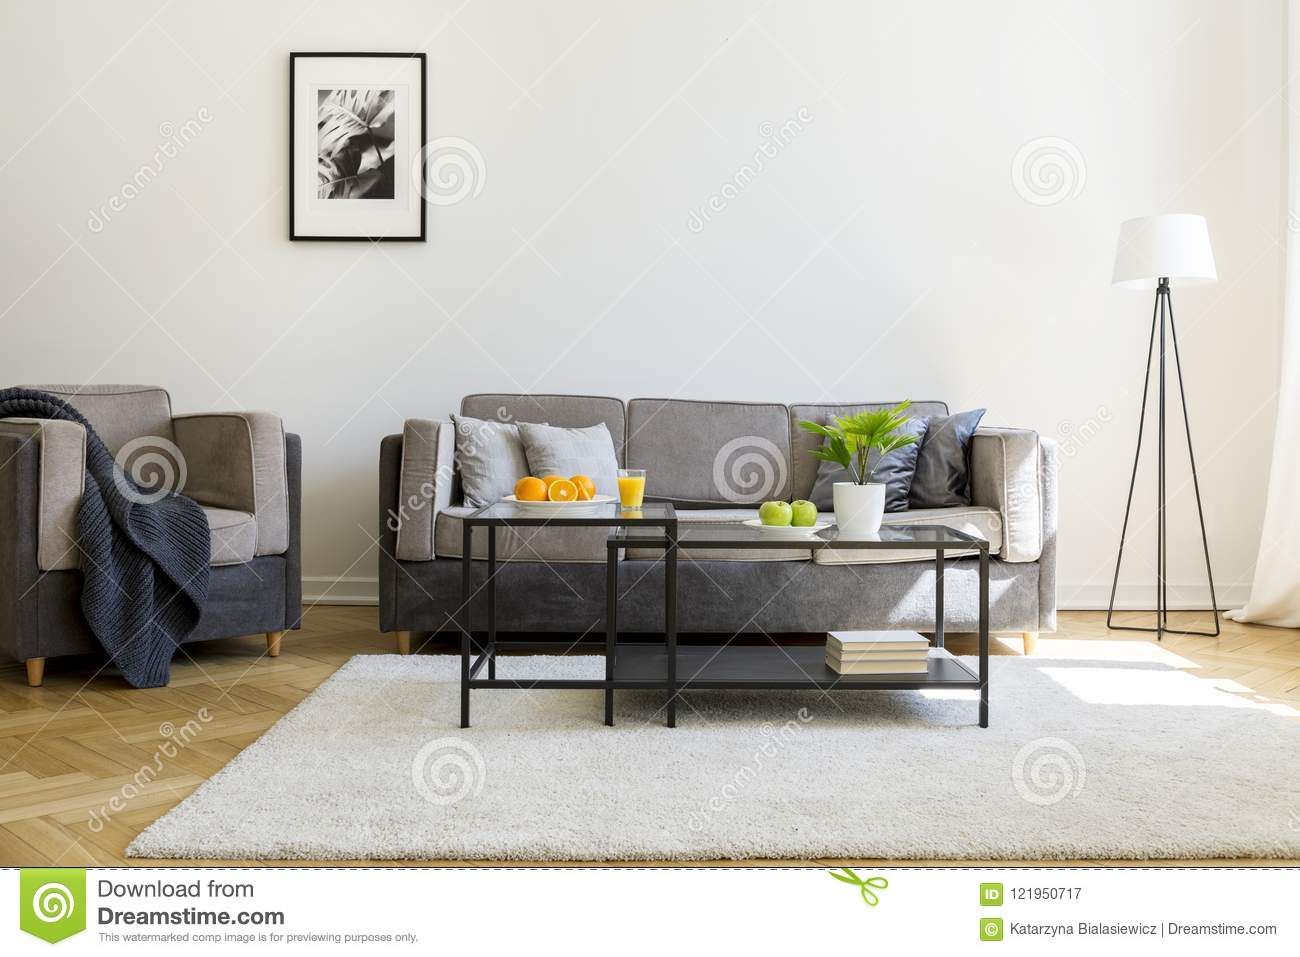 Sofa Next Grey Blanket On Armchair Next To Grey Sofa In Bright Living Room Inte